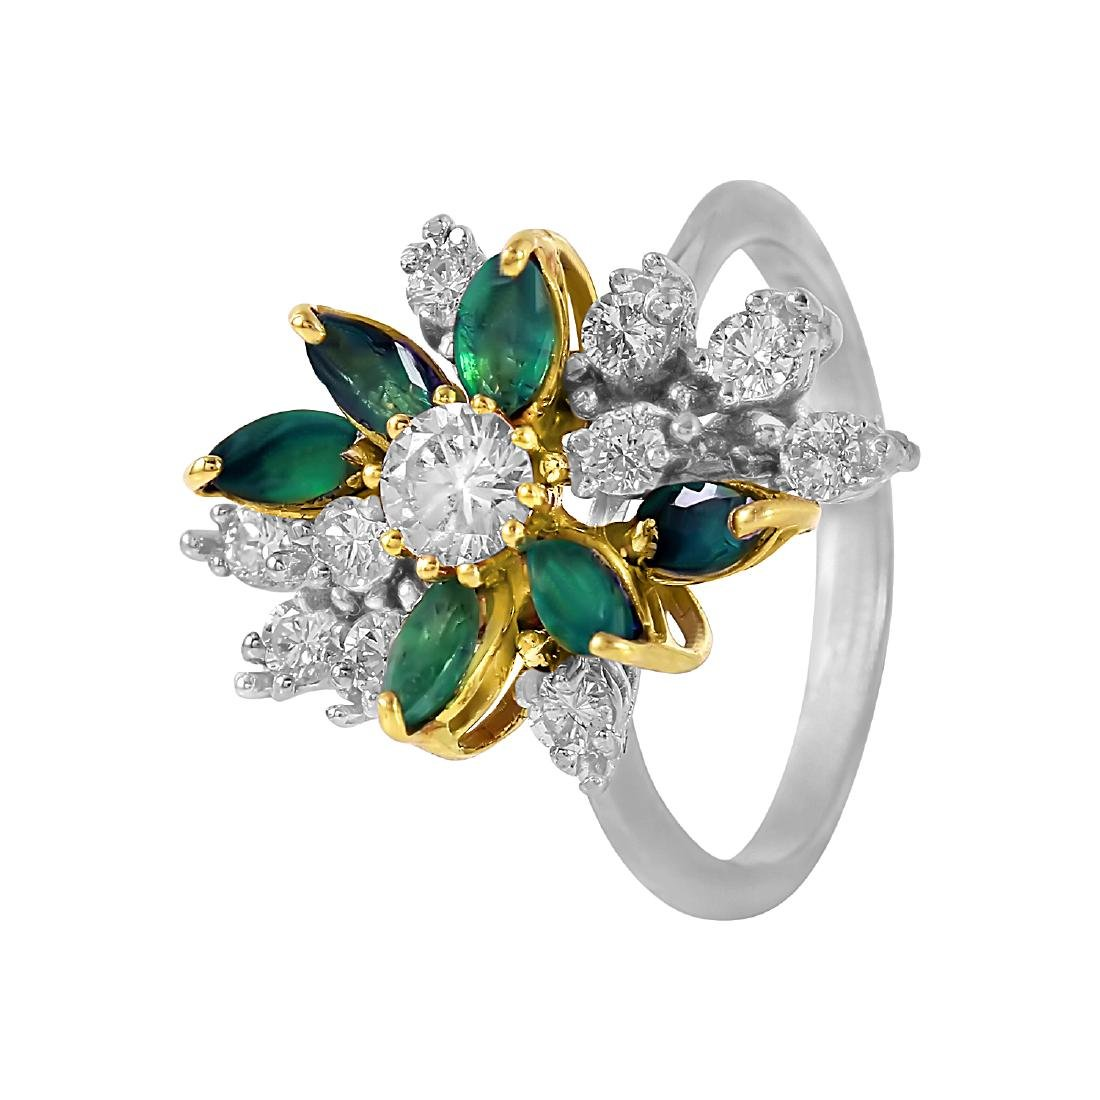 14KT Two Tone Gold Emerald and Diamond Ring